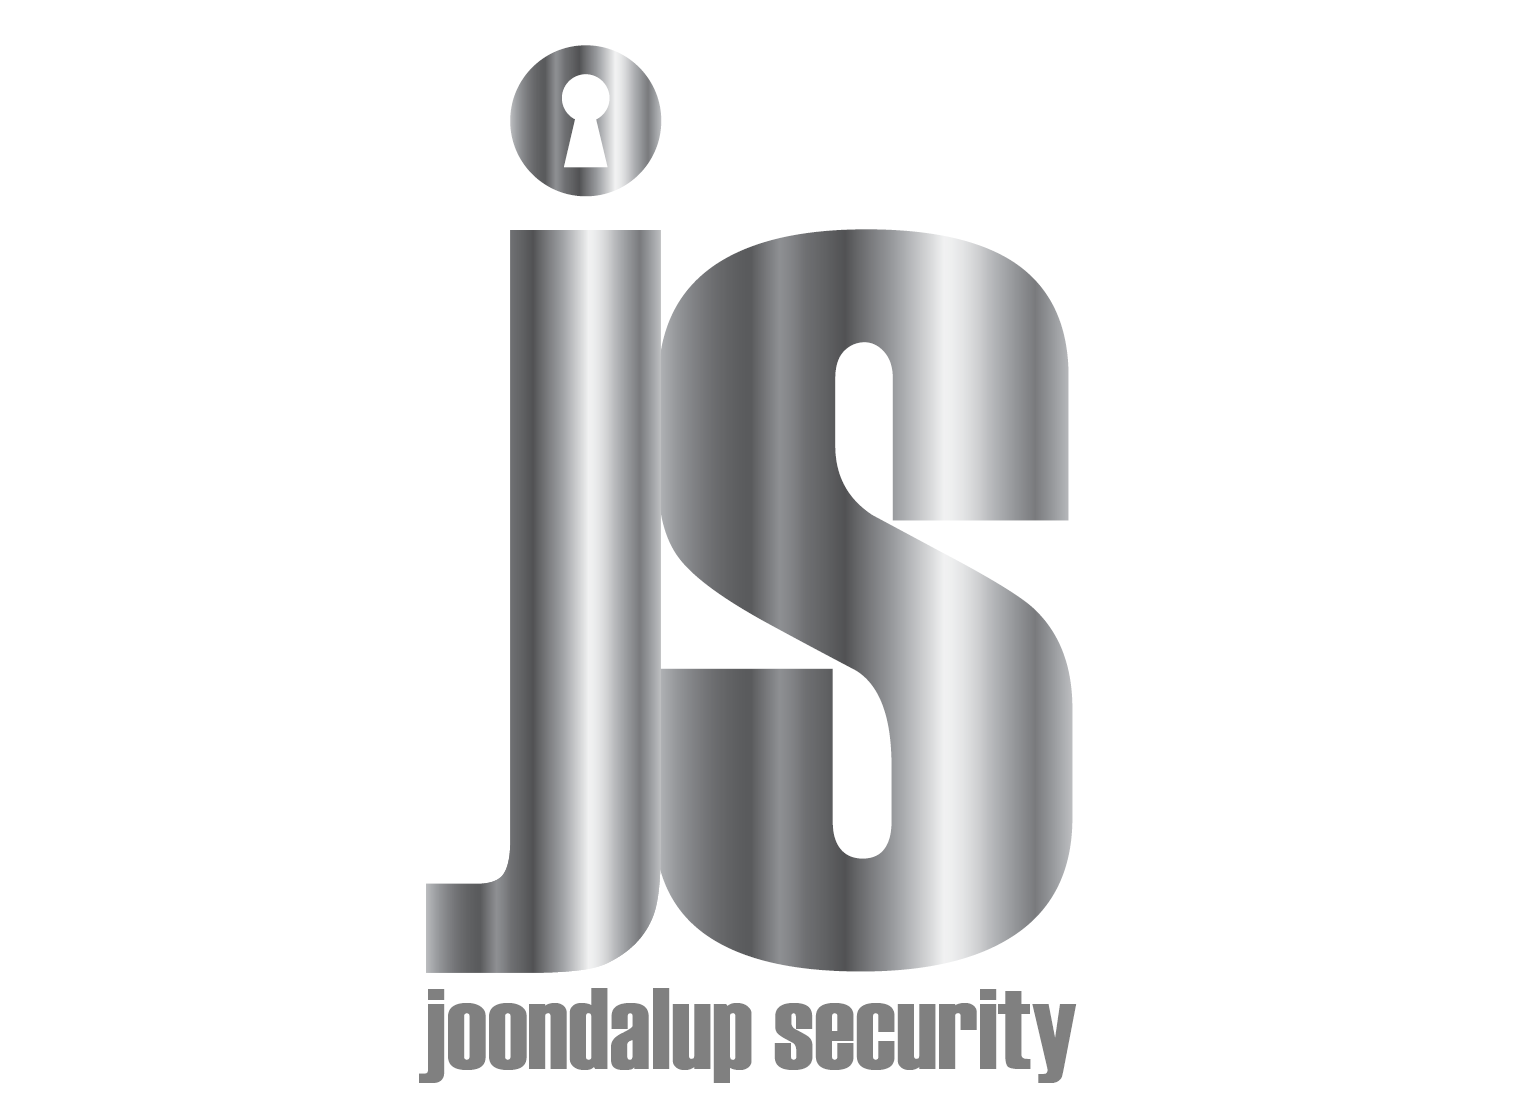 joondalup-security-logo